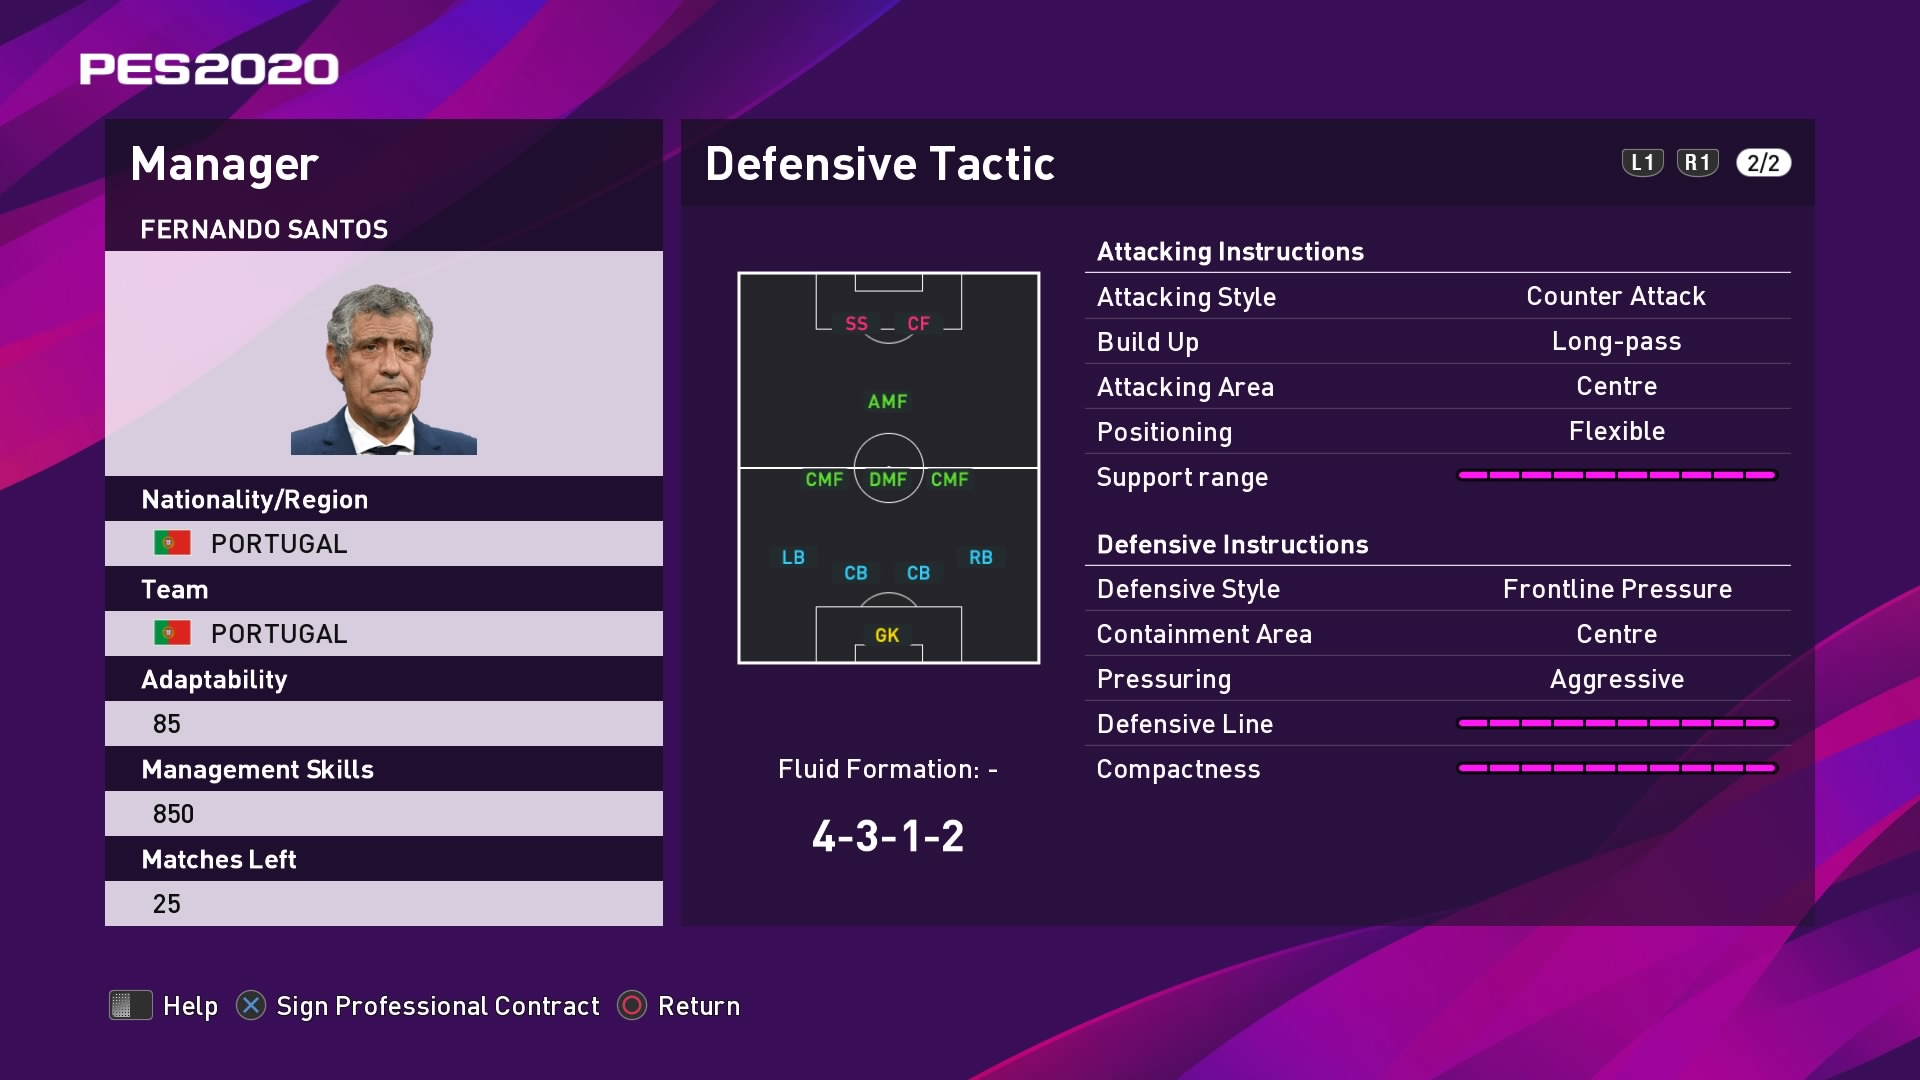 Fernando Santos Defensive Tactic in PES 2020 myClub